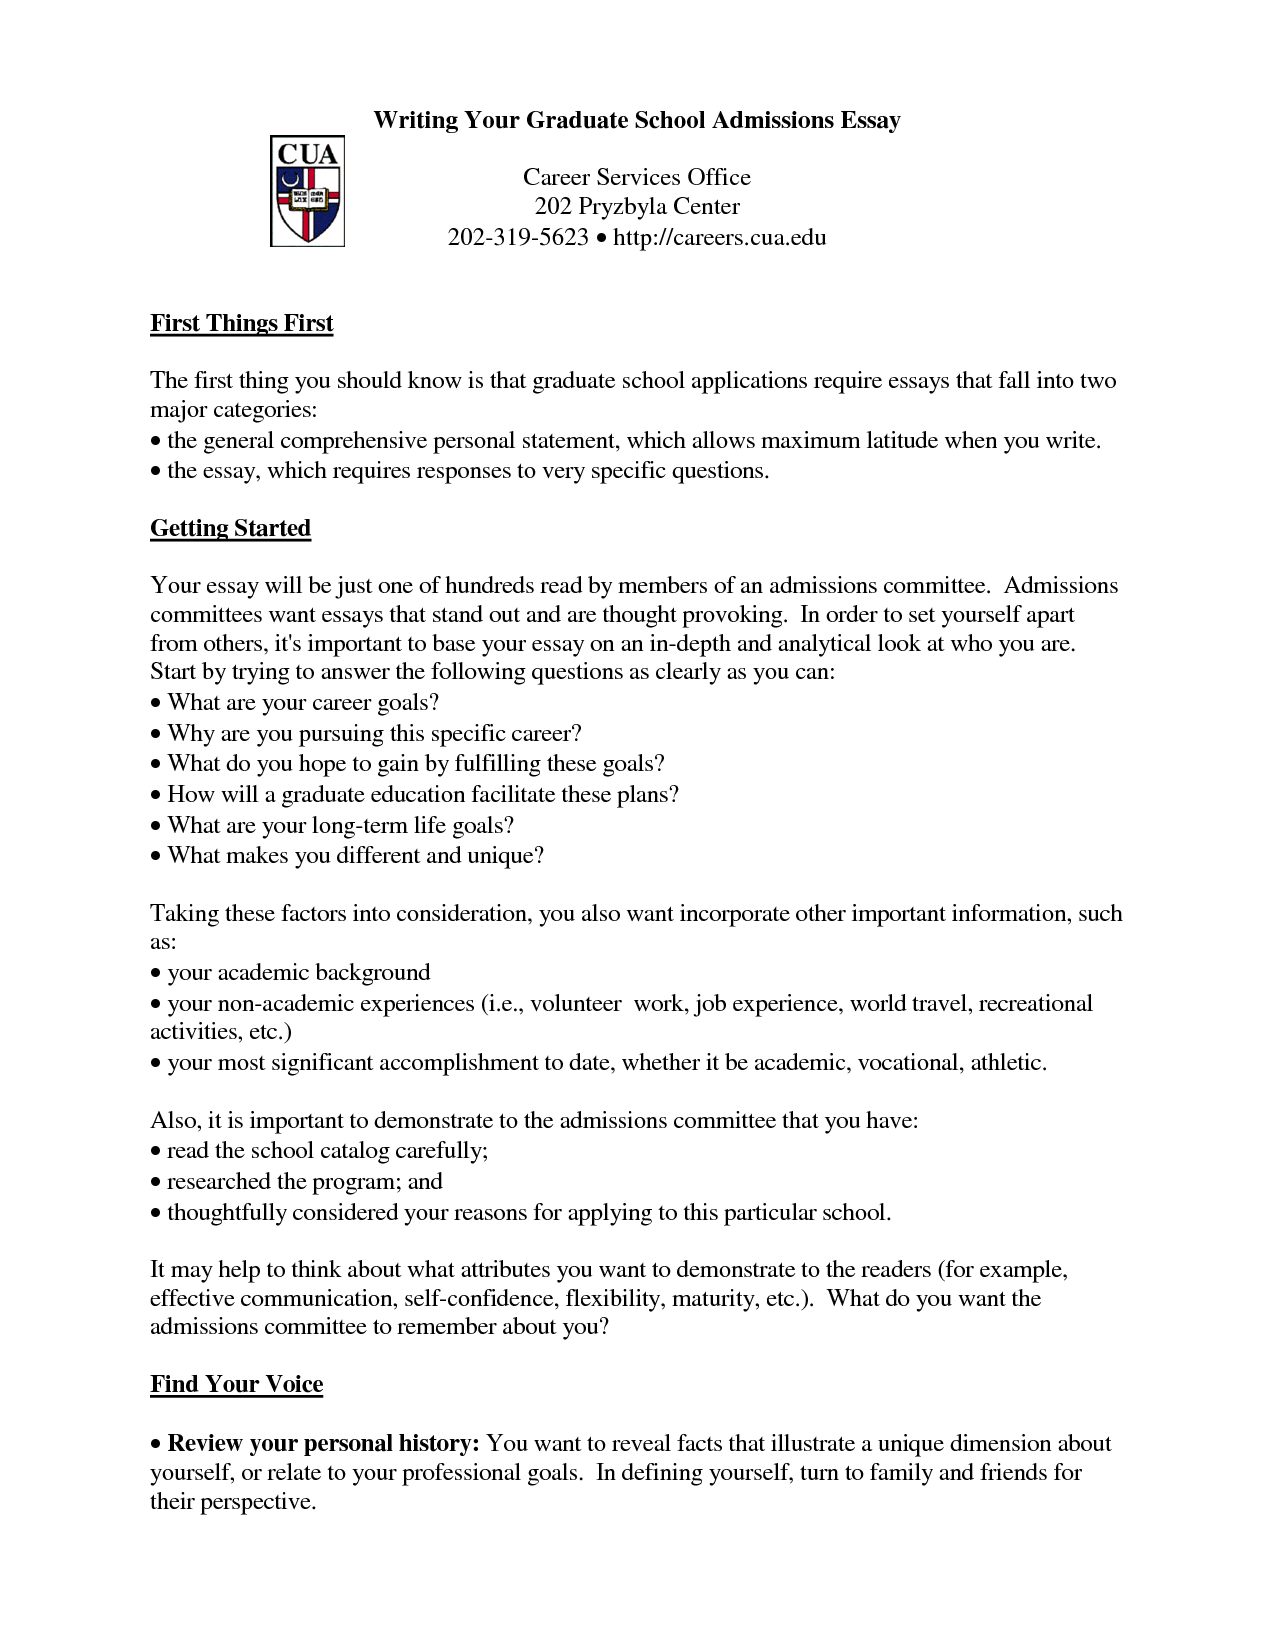 personal statement sample essays for cover letter prompt essay personal statement sample essays for graduate admissions - Personal Statement Essay Examples For Graduate School